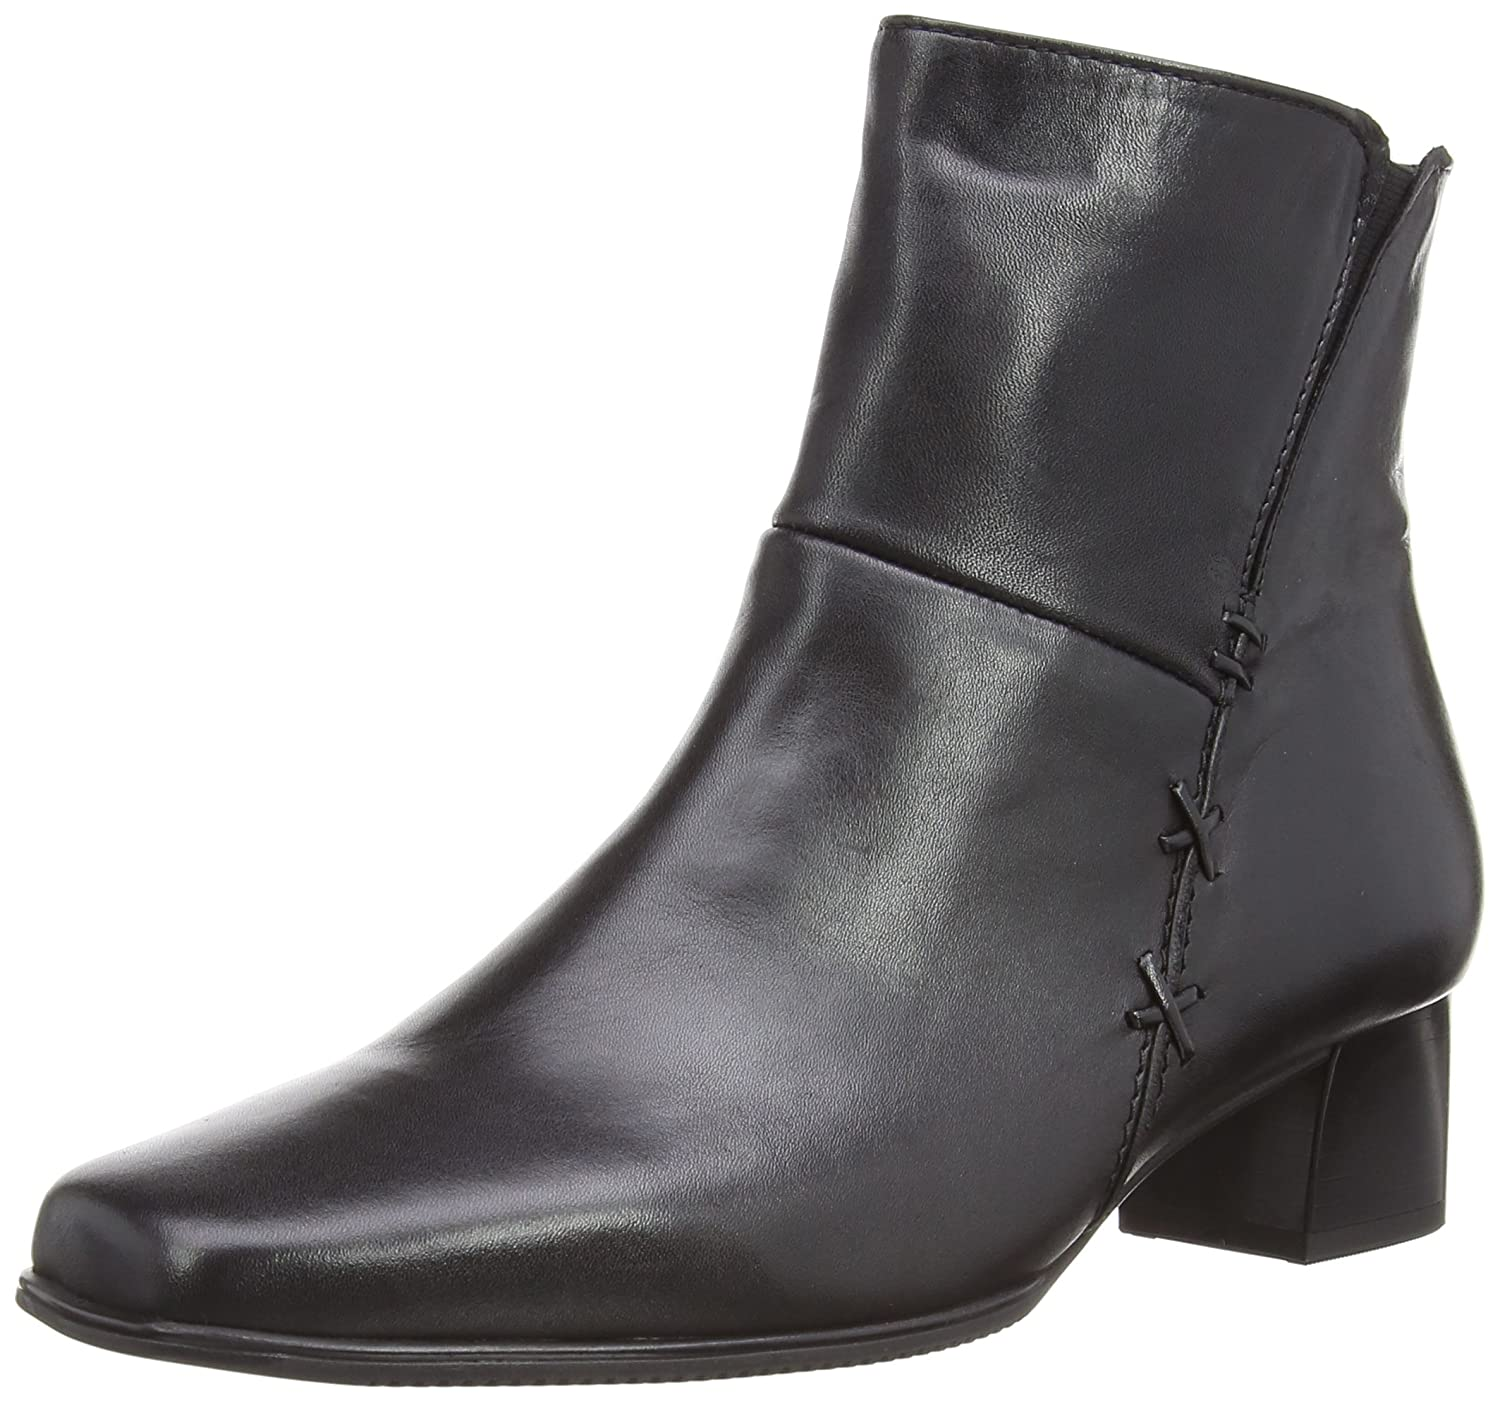 1894386a0 Amazon.com | Gabor Women's Bassanio Leather Ankle Boots | Ankle & Bootie